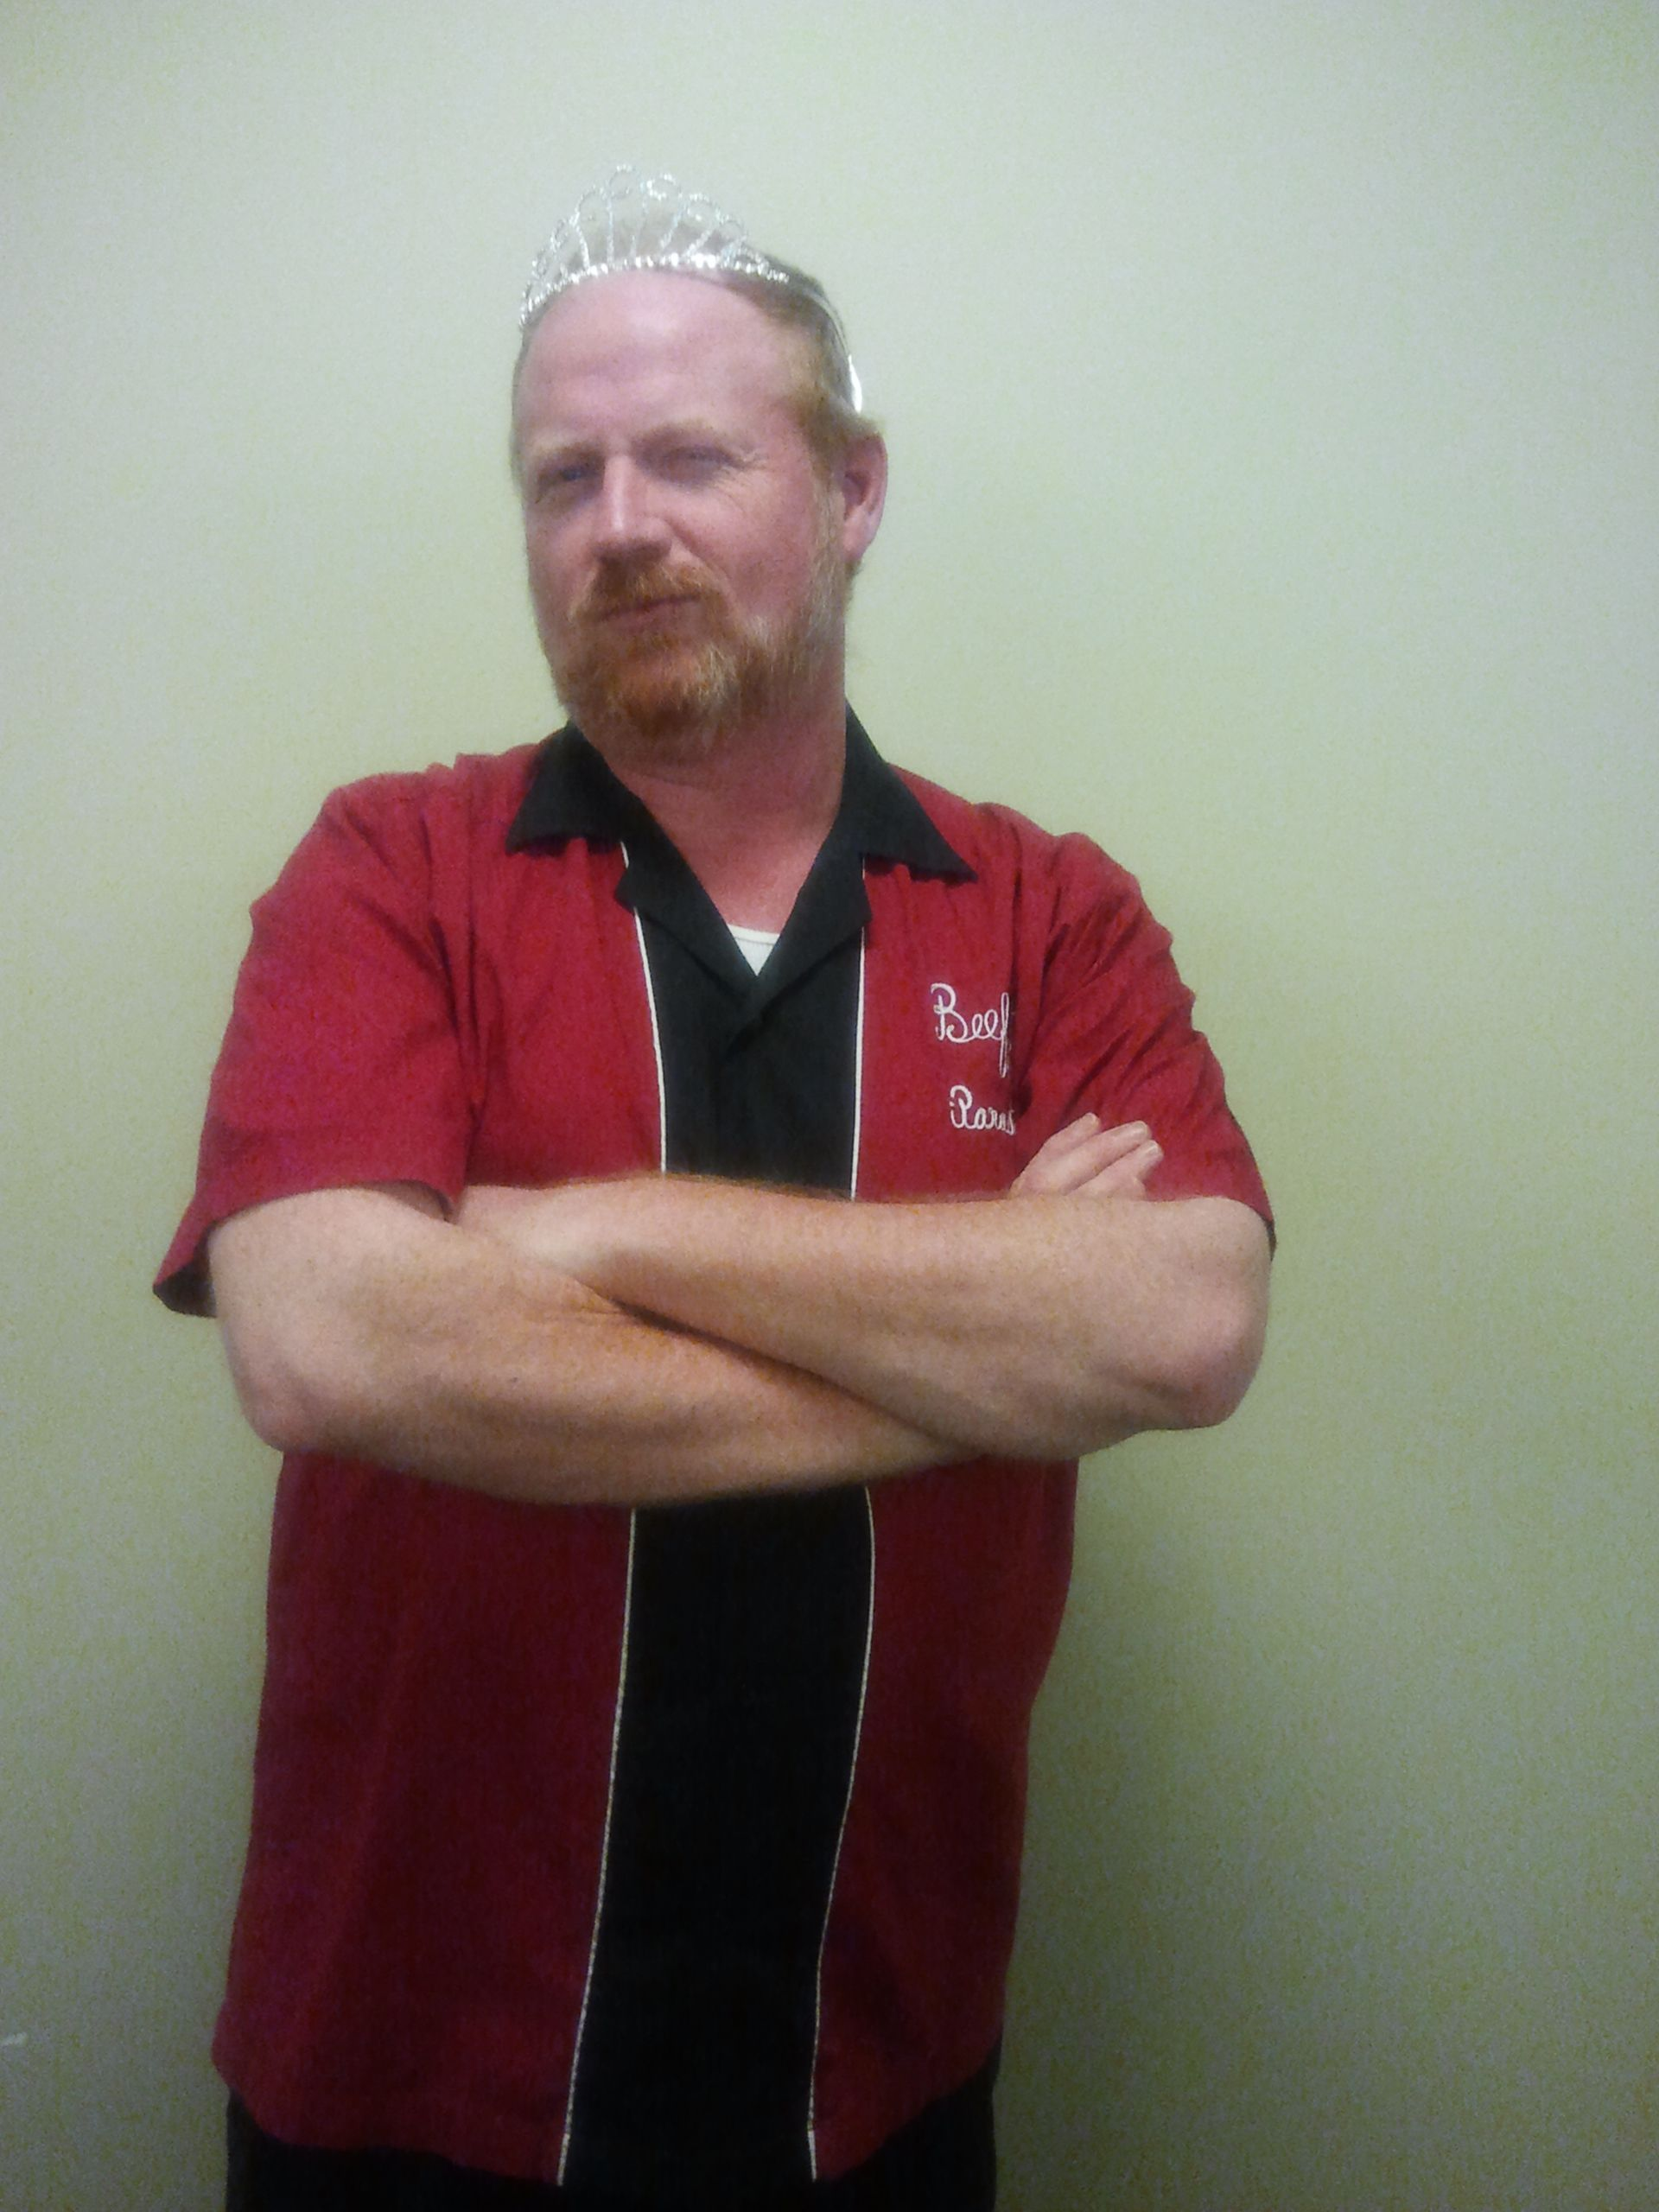 You can call him Todd, or you can call him Beefy!  His winning iParadigms bowling shirt says so!  Really nice tiara, Beefy!